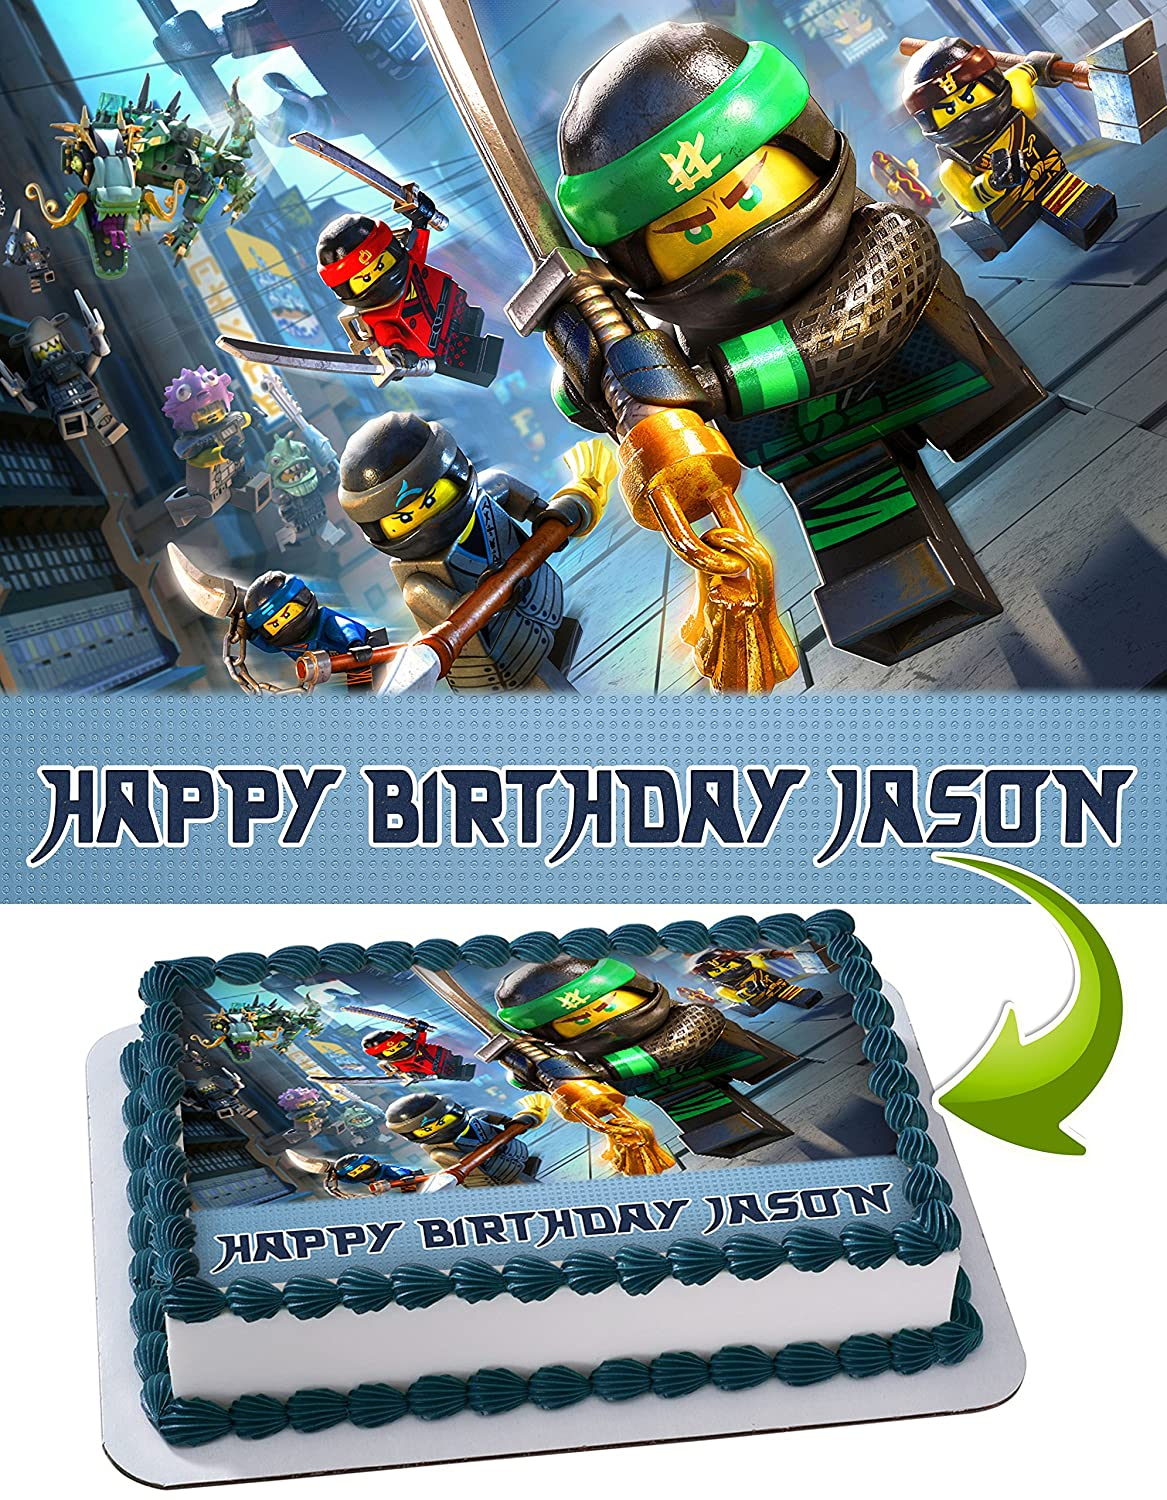 Lego Ninjago Personalized Cake Toppers Icing Sugar Paper A4 Sheet